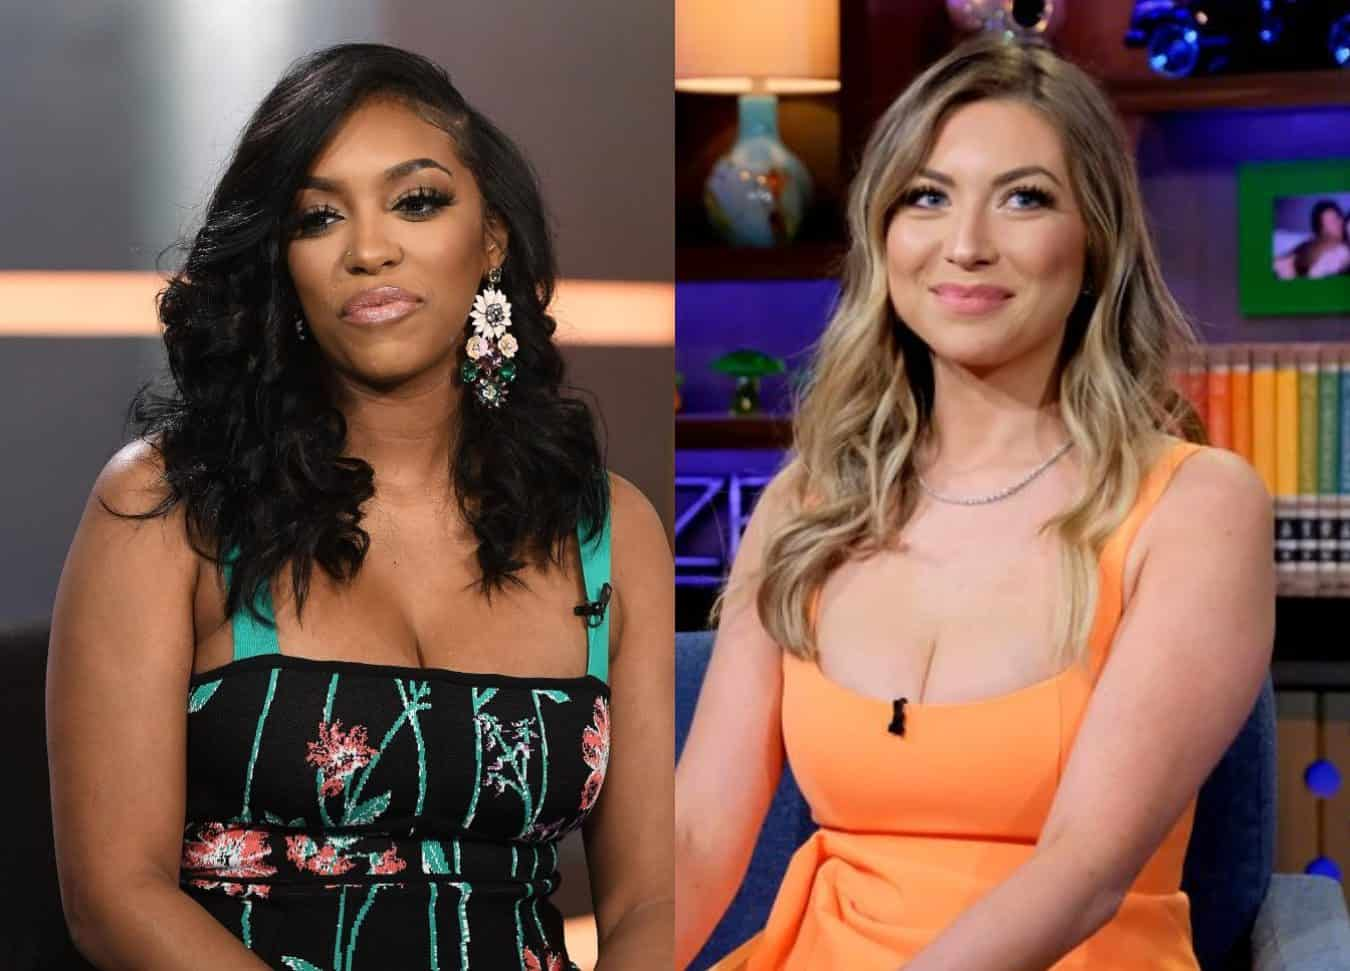 """RHOA's Porsha Williams Reacts to Stassi Schroeder's Past """"Nazi Chic"""" Photo as Vanderpump Rules Star is Dropped by Her Agency and Glamour Magazine Amid Racism Scandal"""